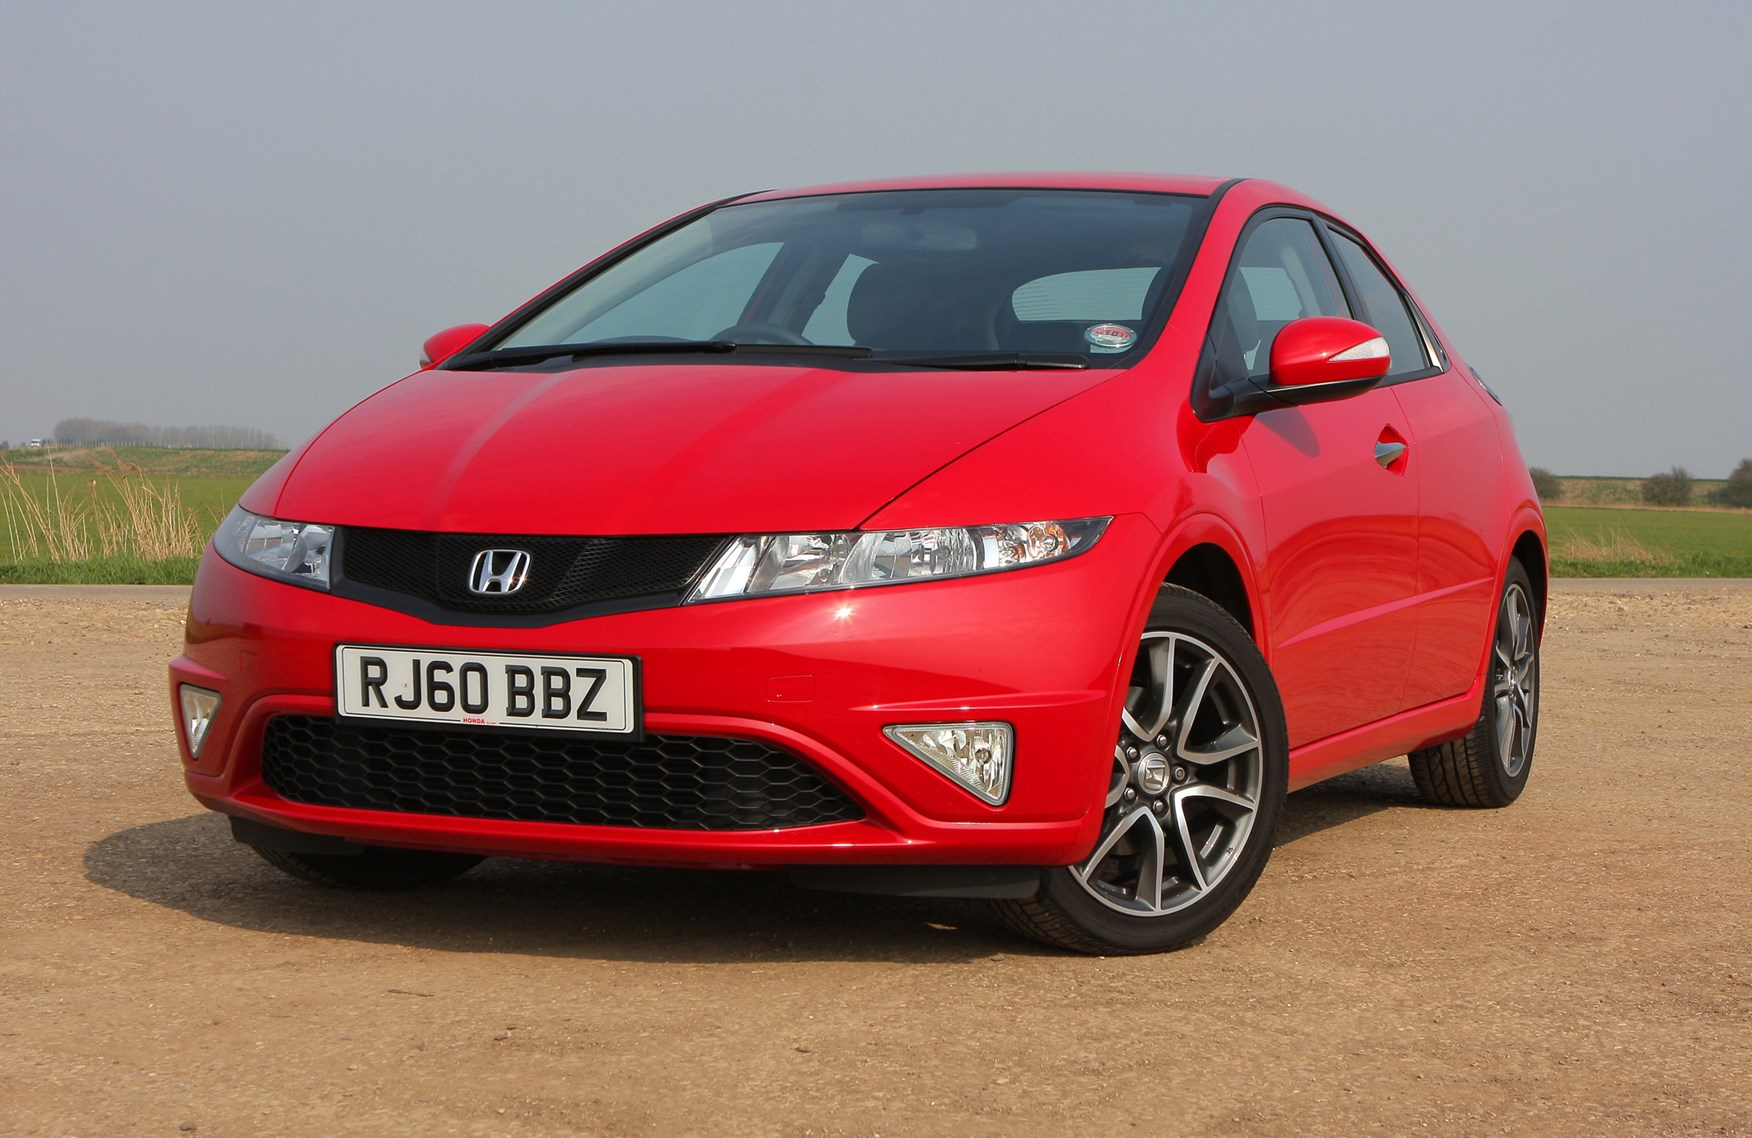 Used Honda Civic Hatchback (2006 - 2011) Review | Parkers